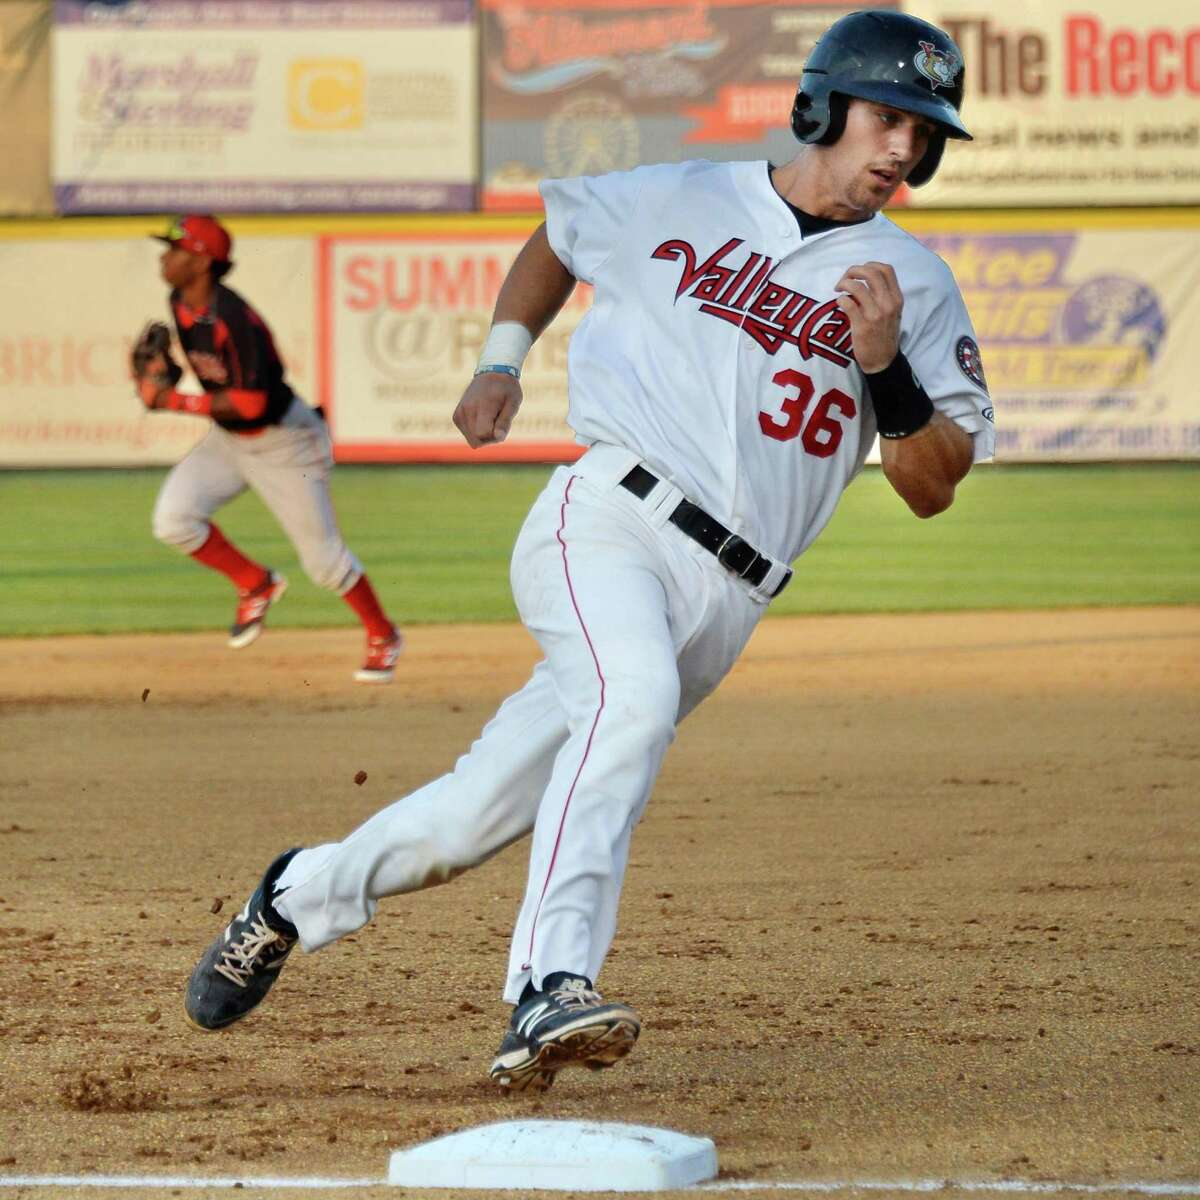 Tri-City ValleyCats' catcher #36 Jamie Richards rounds third on his way to scoring on a Terrell Joyce double against the Batavia Muckdogs during Saturday's game at Bruno Stadium August 3, 2014, in Troy, NY. (John Carl D'Annibale / Times Union)